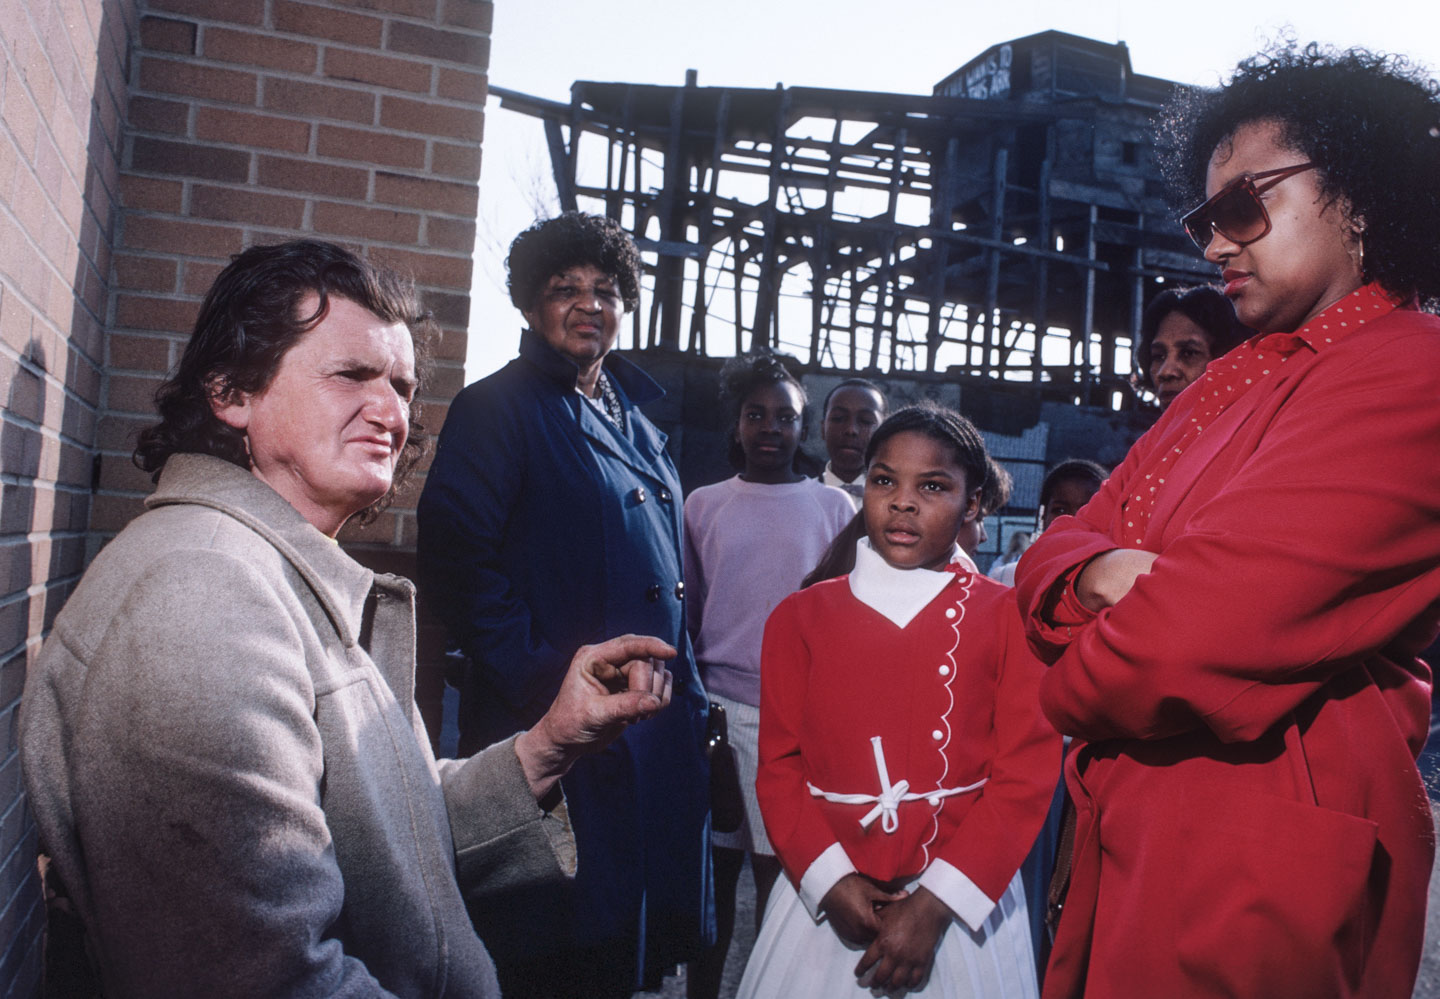 31-Kea speaking to visitors to the ark, Bergen St. at 14th Ave., Newark, 1987_